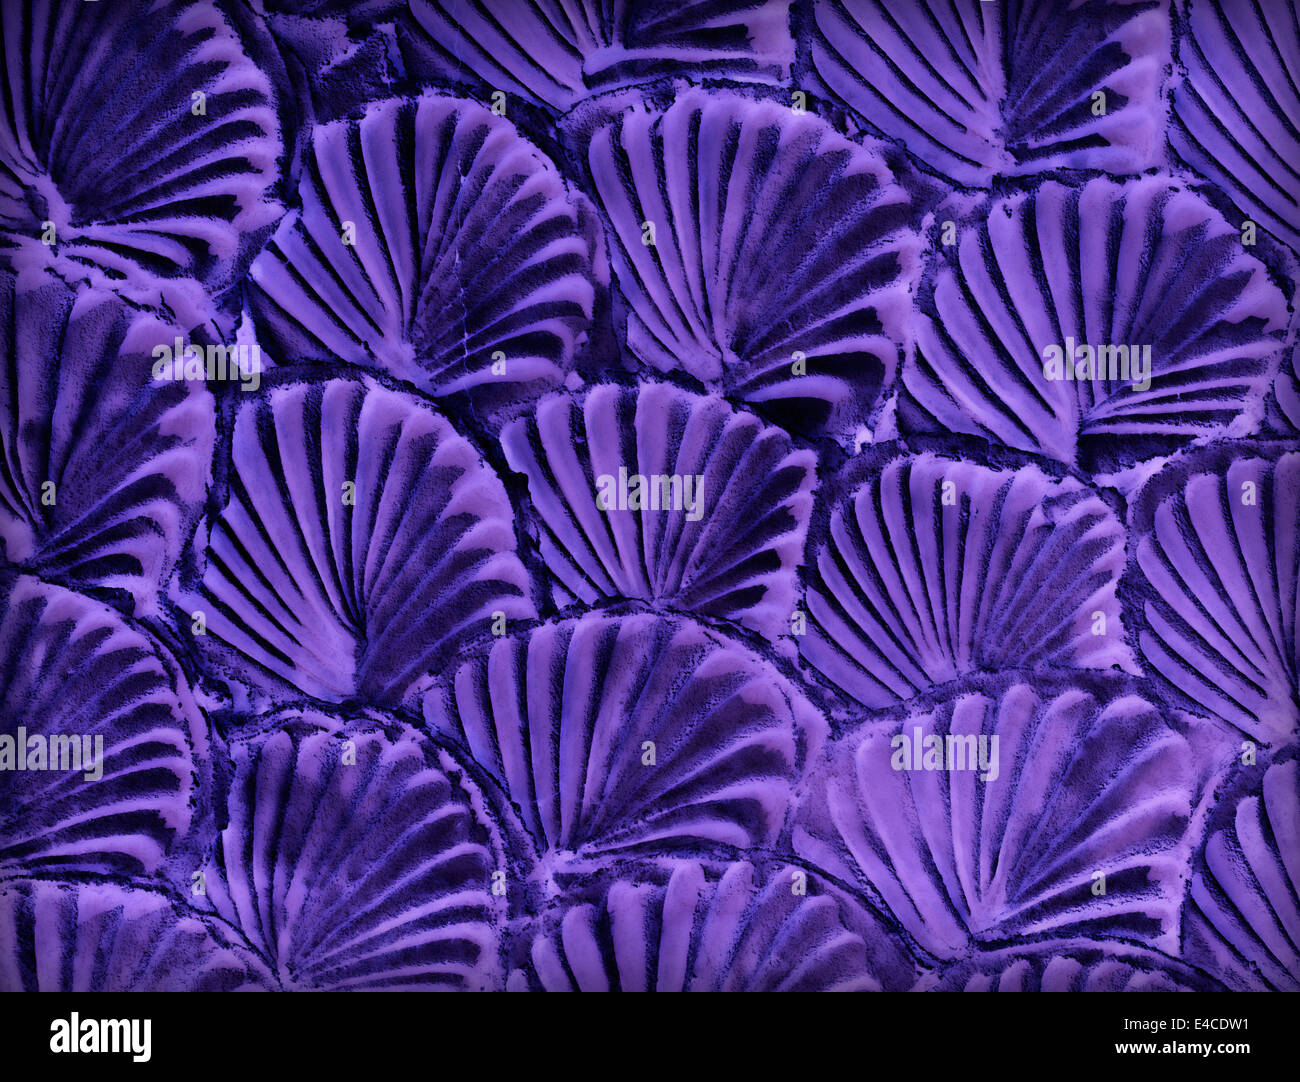 Aesthetic Texture Wallpapers: Purple Mortar Wall Texture Background Aesthetic Stock